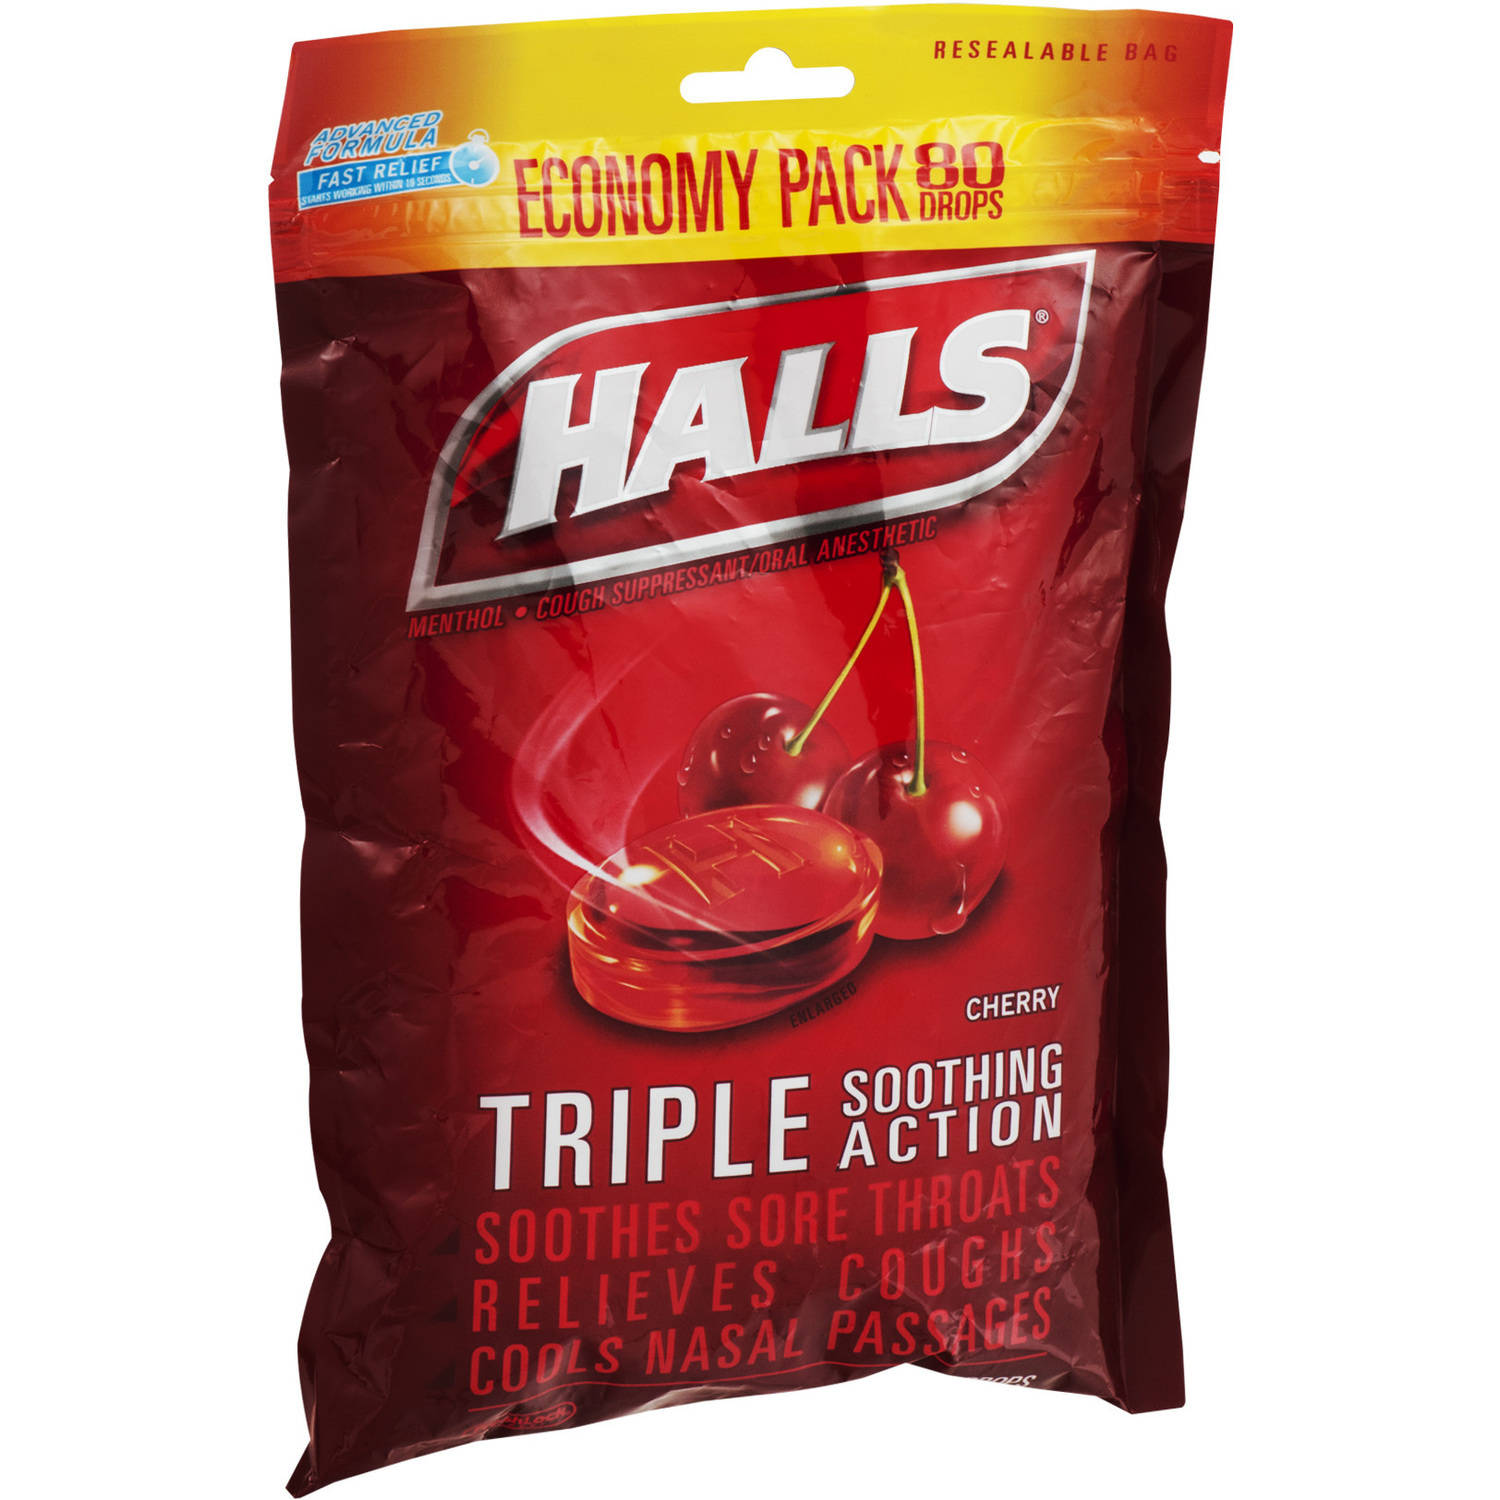 Halls Cherry Menthol Drops Cough Suppressant 80 Ct